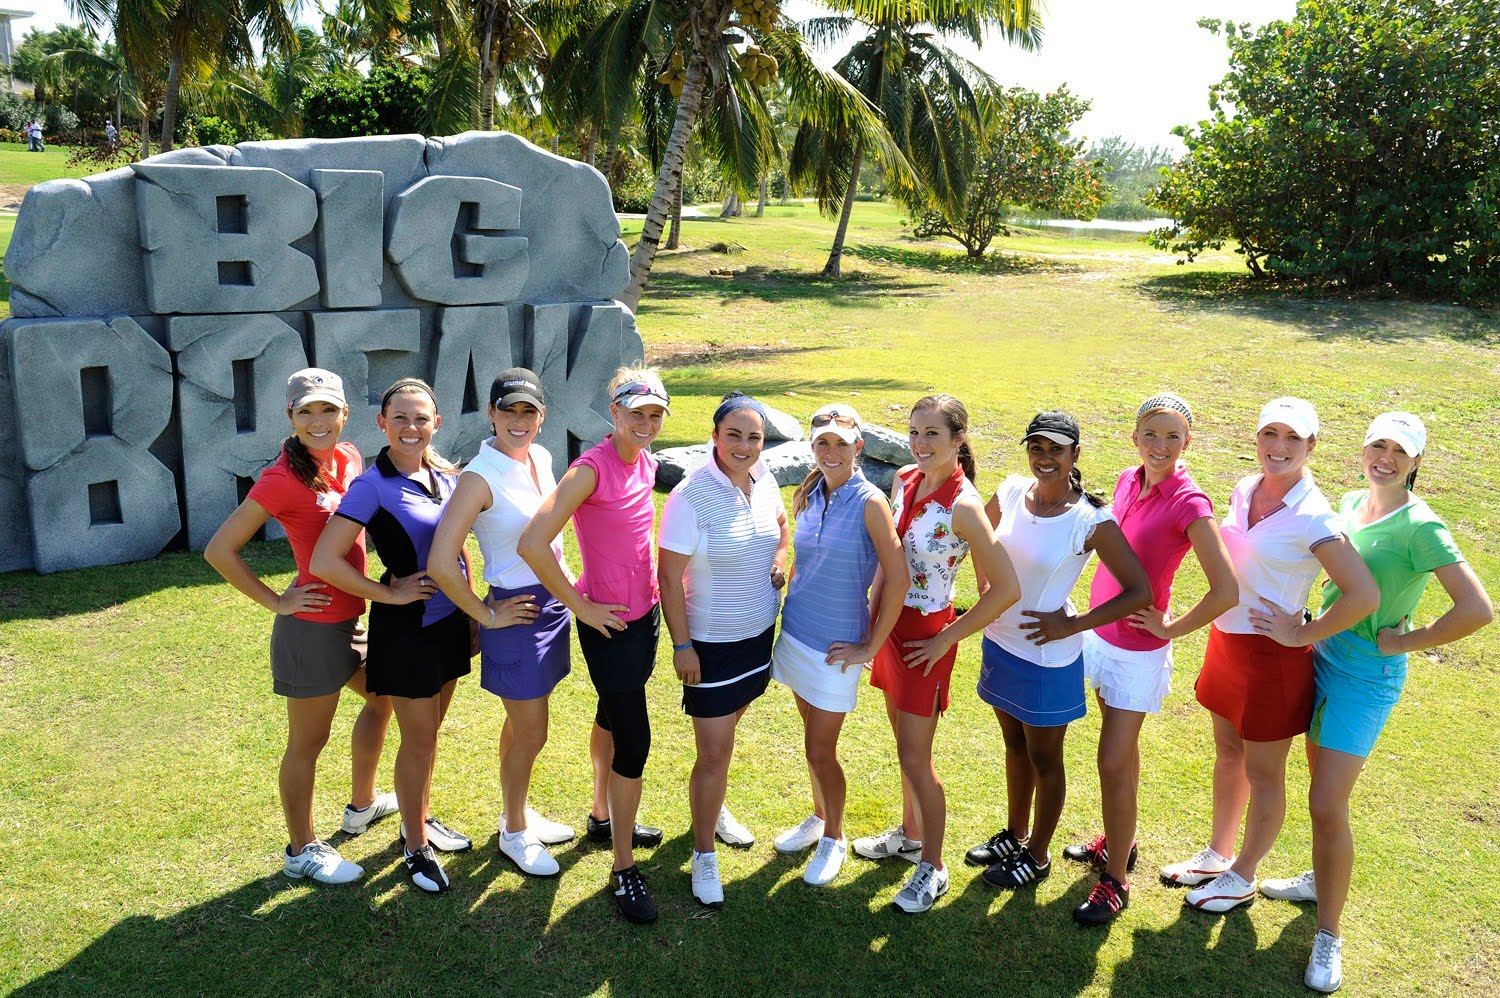 Greg Norman And Sandals Host 11 Talented Women Golfers Looking For Their Big Break Golfgal